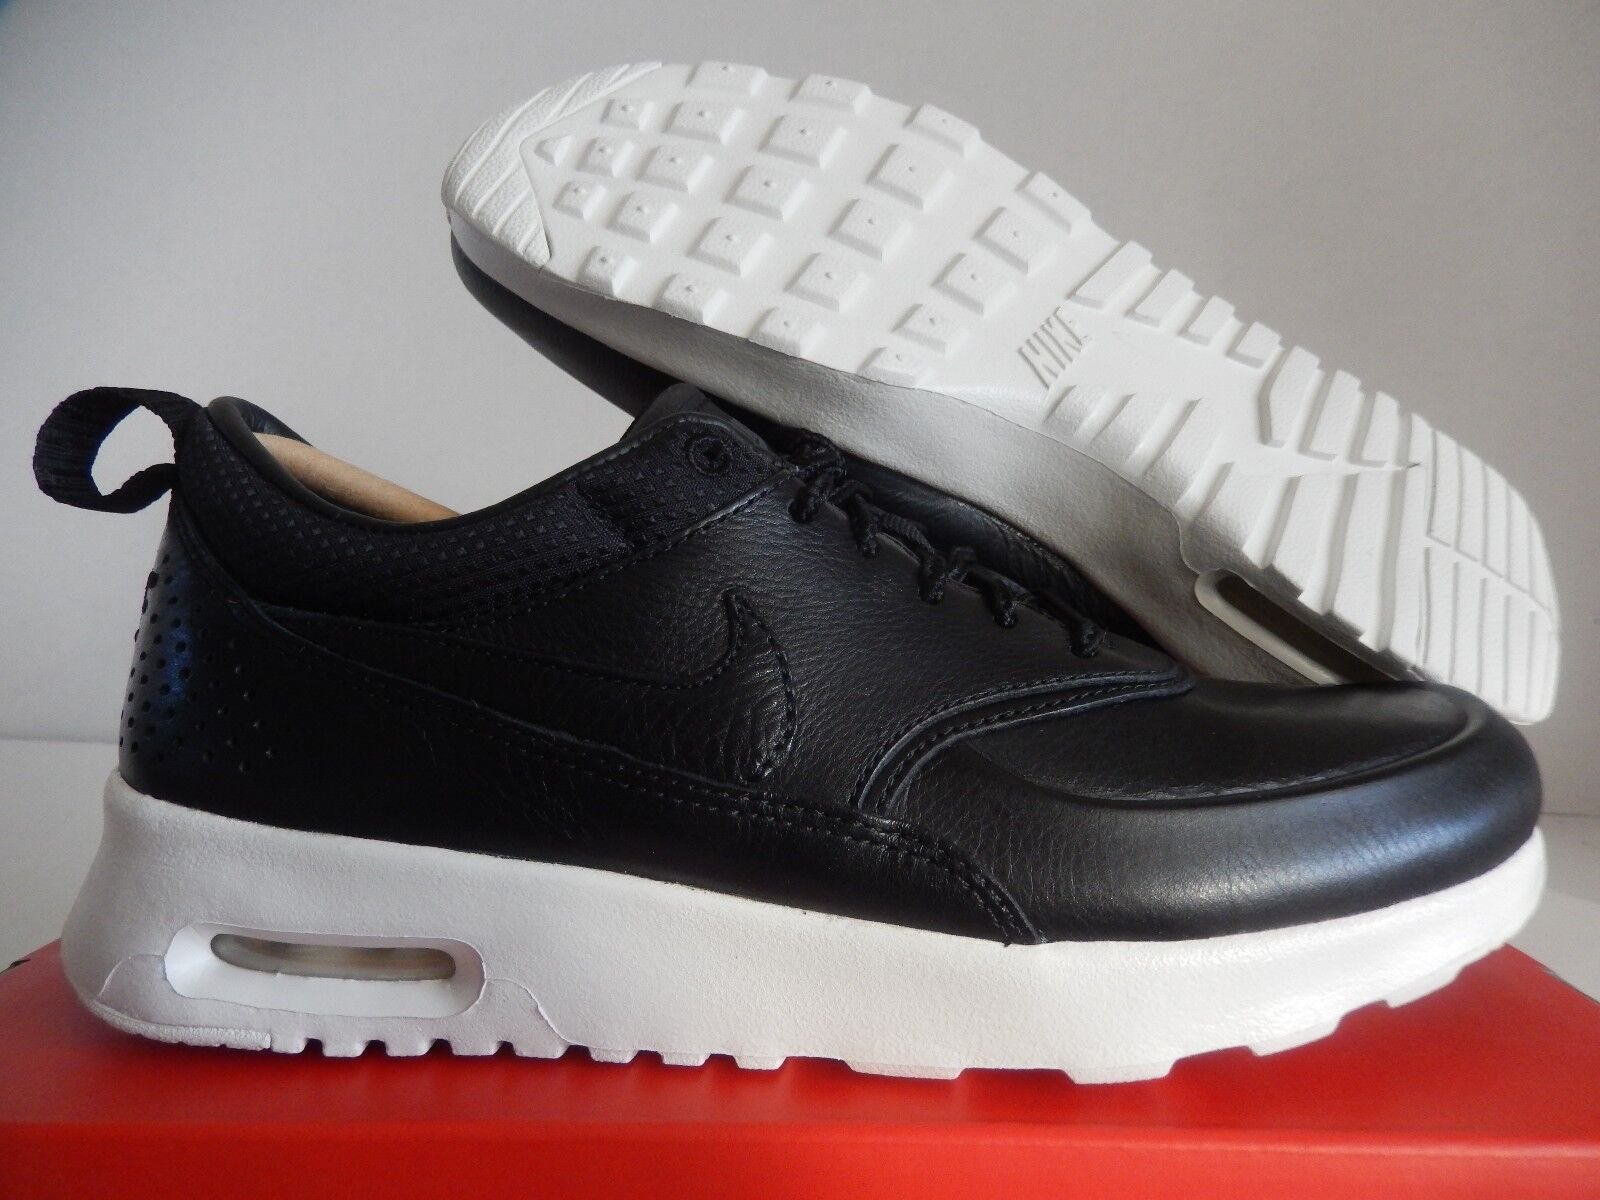 WMNS NIKE AIR MAX THEA PINNACLE BLACK-SAIL SZ 6.5 LEATHER    [839611-002]